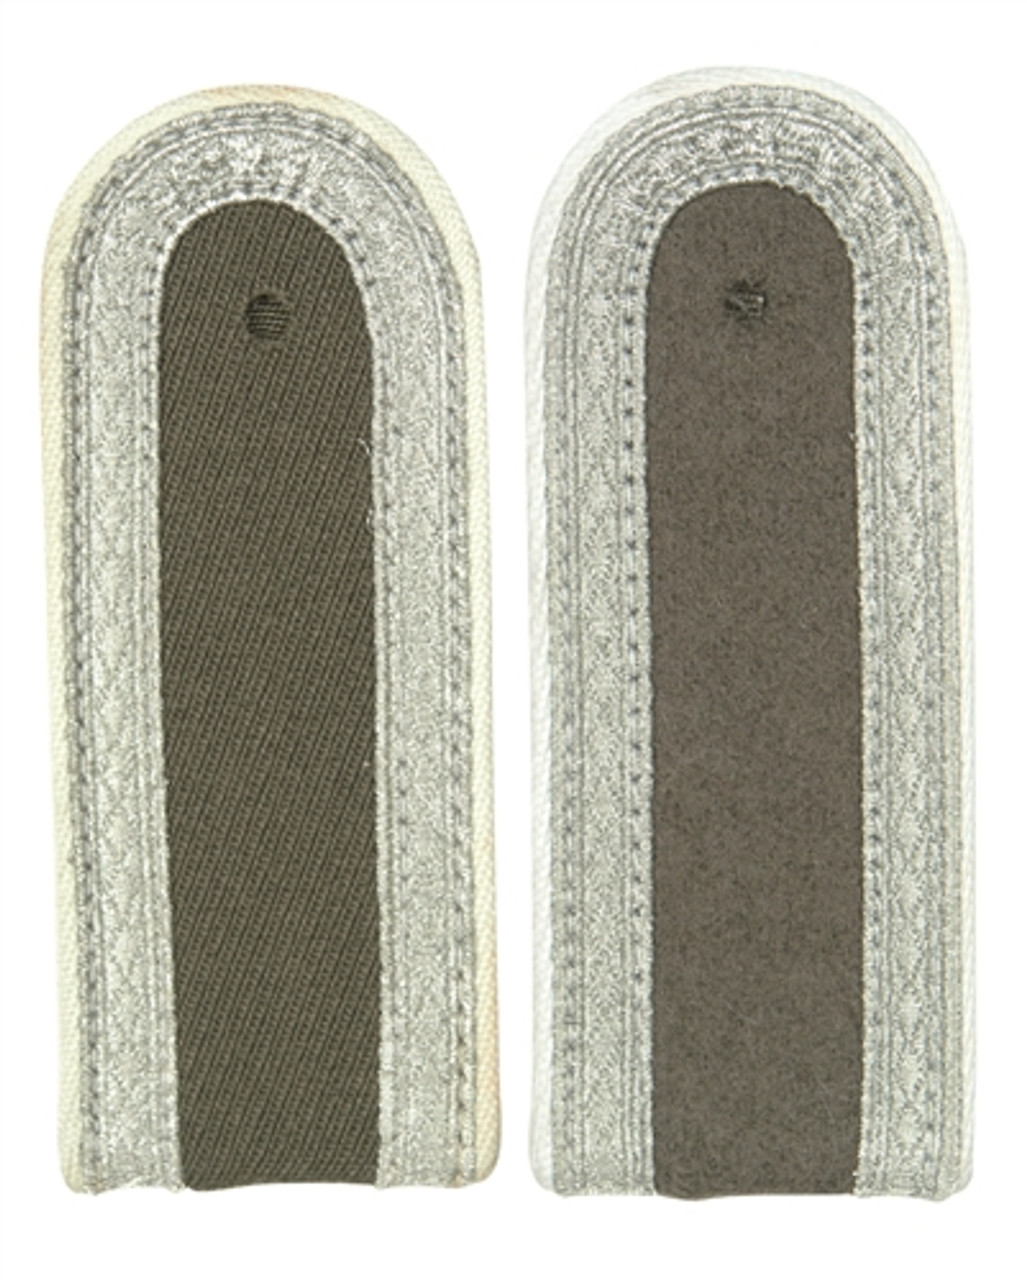 NVA Enlisted Shoulder Boards - Artillery  from Hessen Surplus